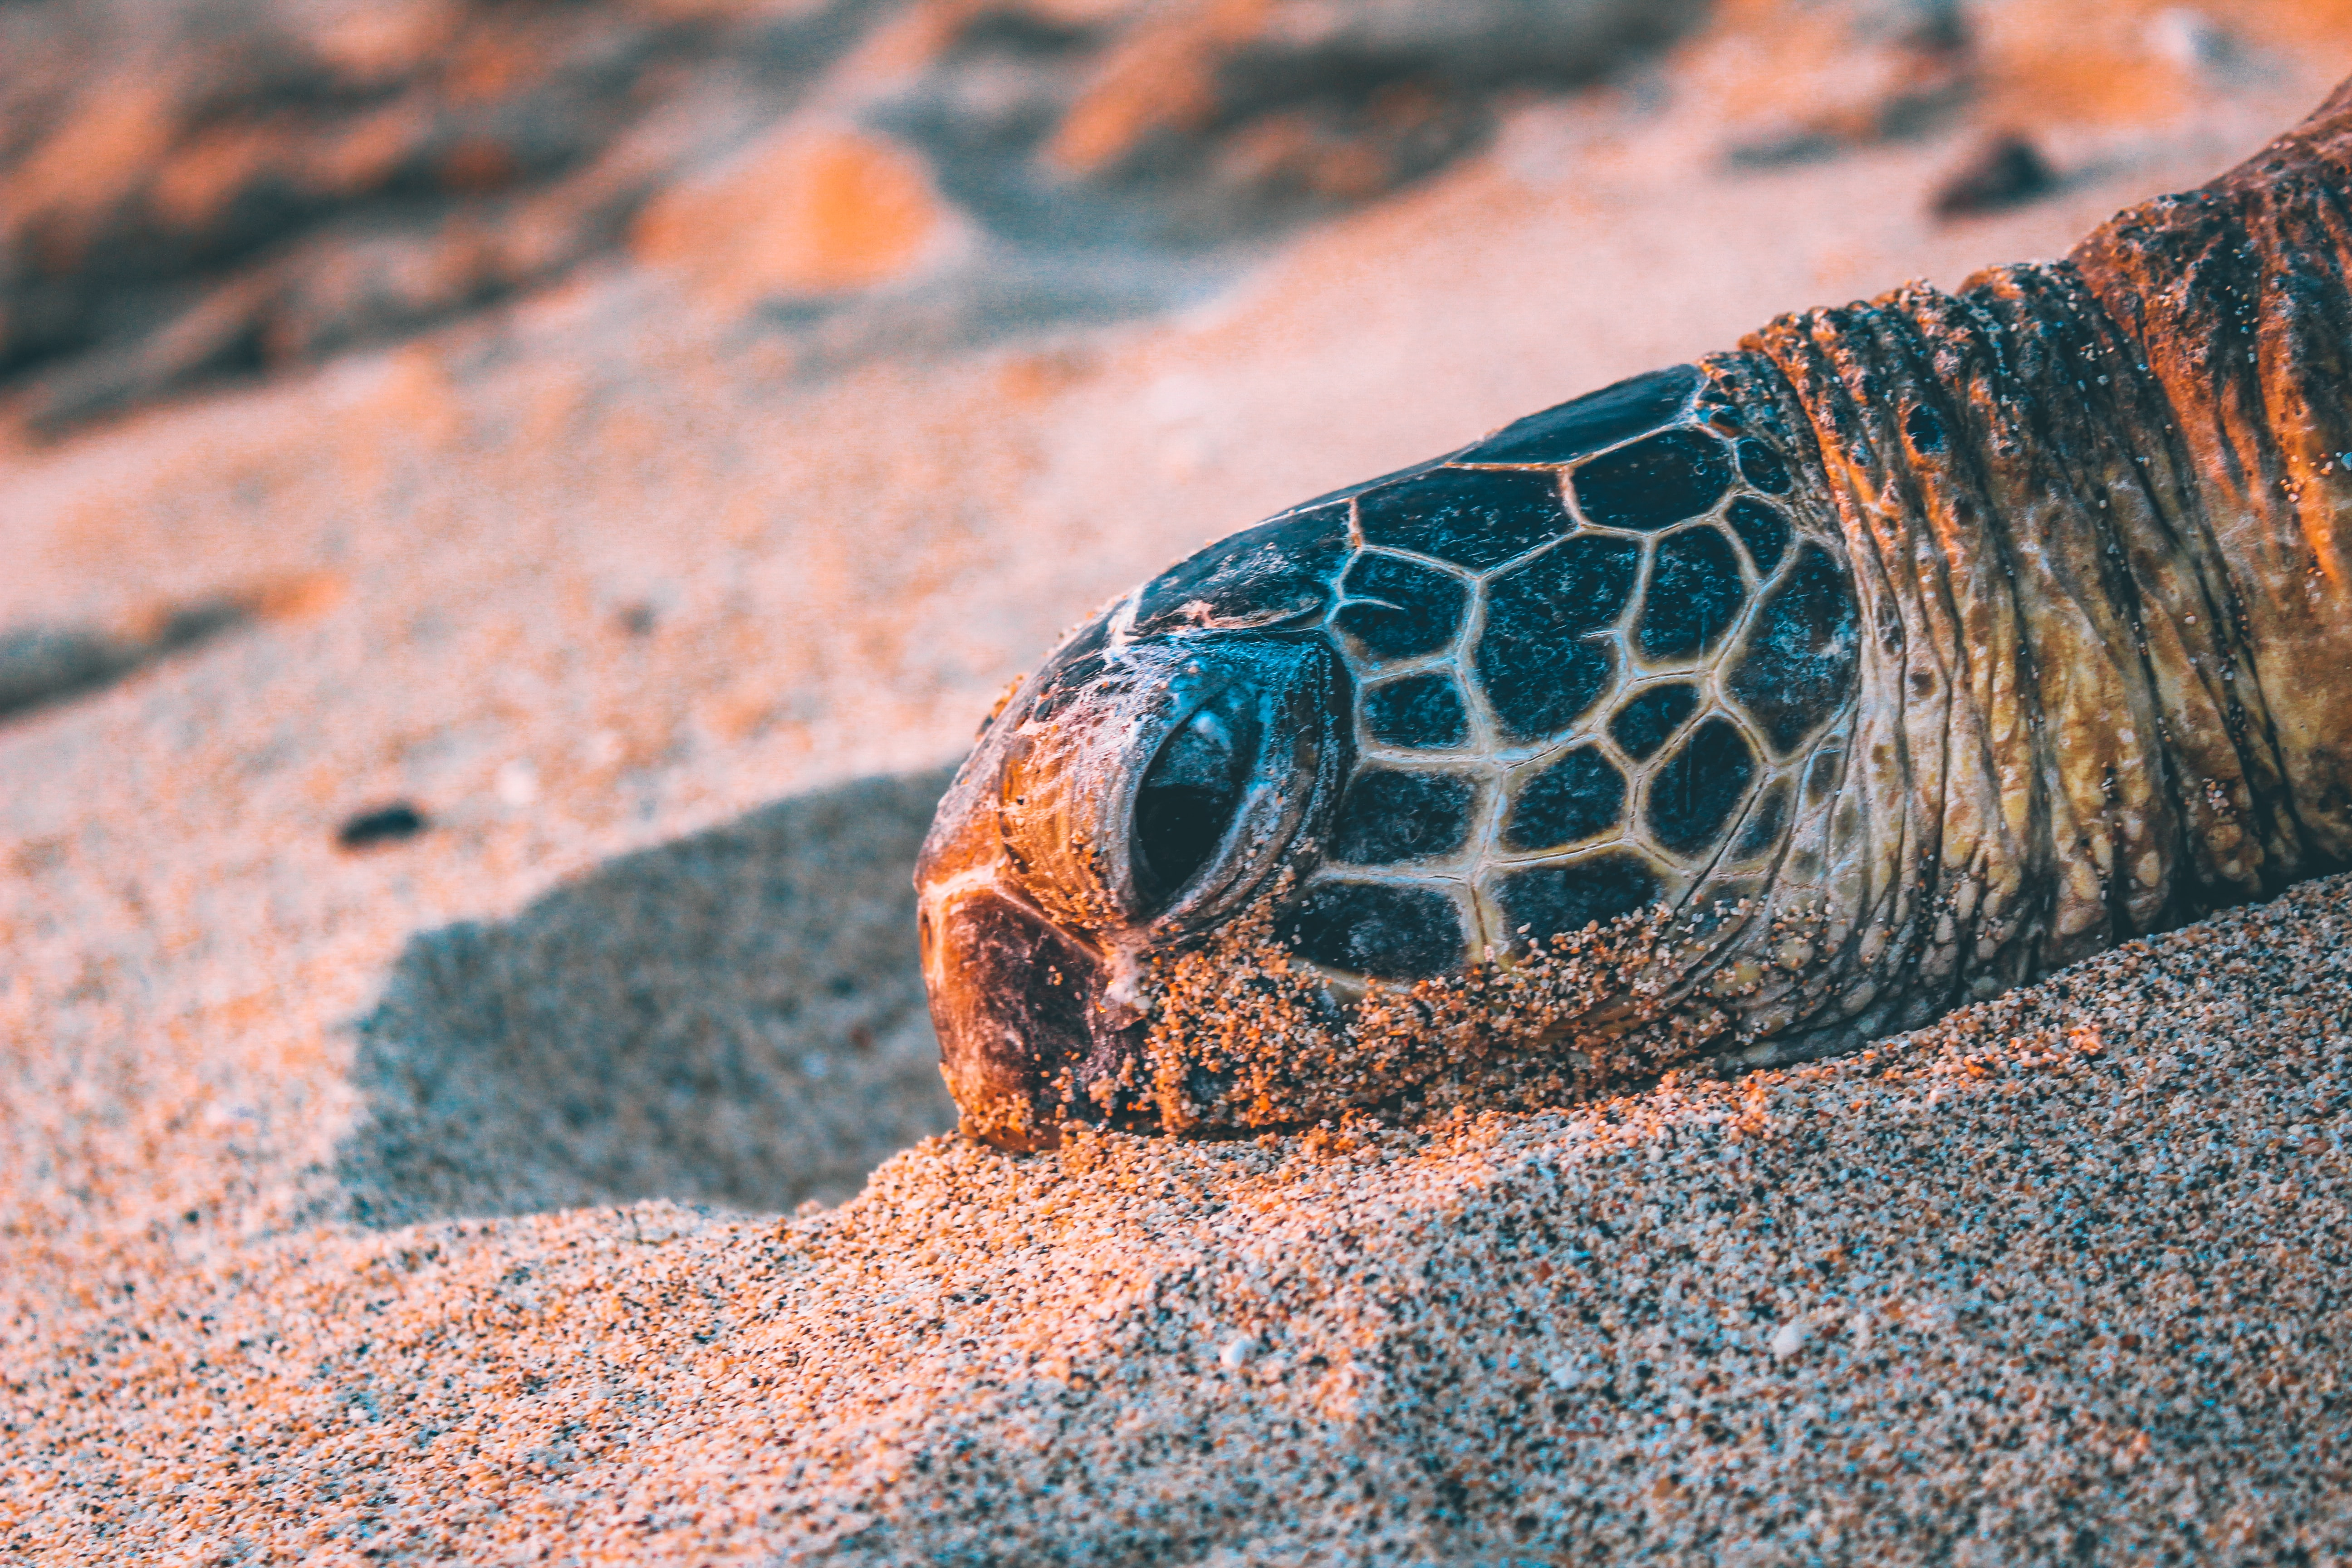 Turtle's head resting on the beach sand